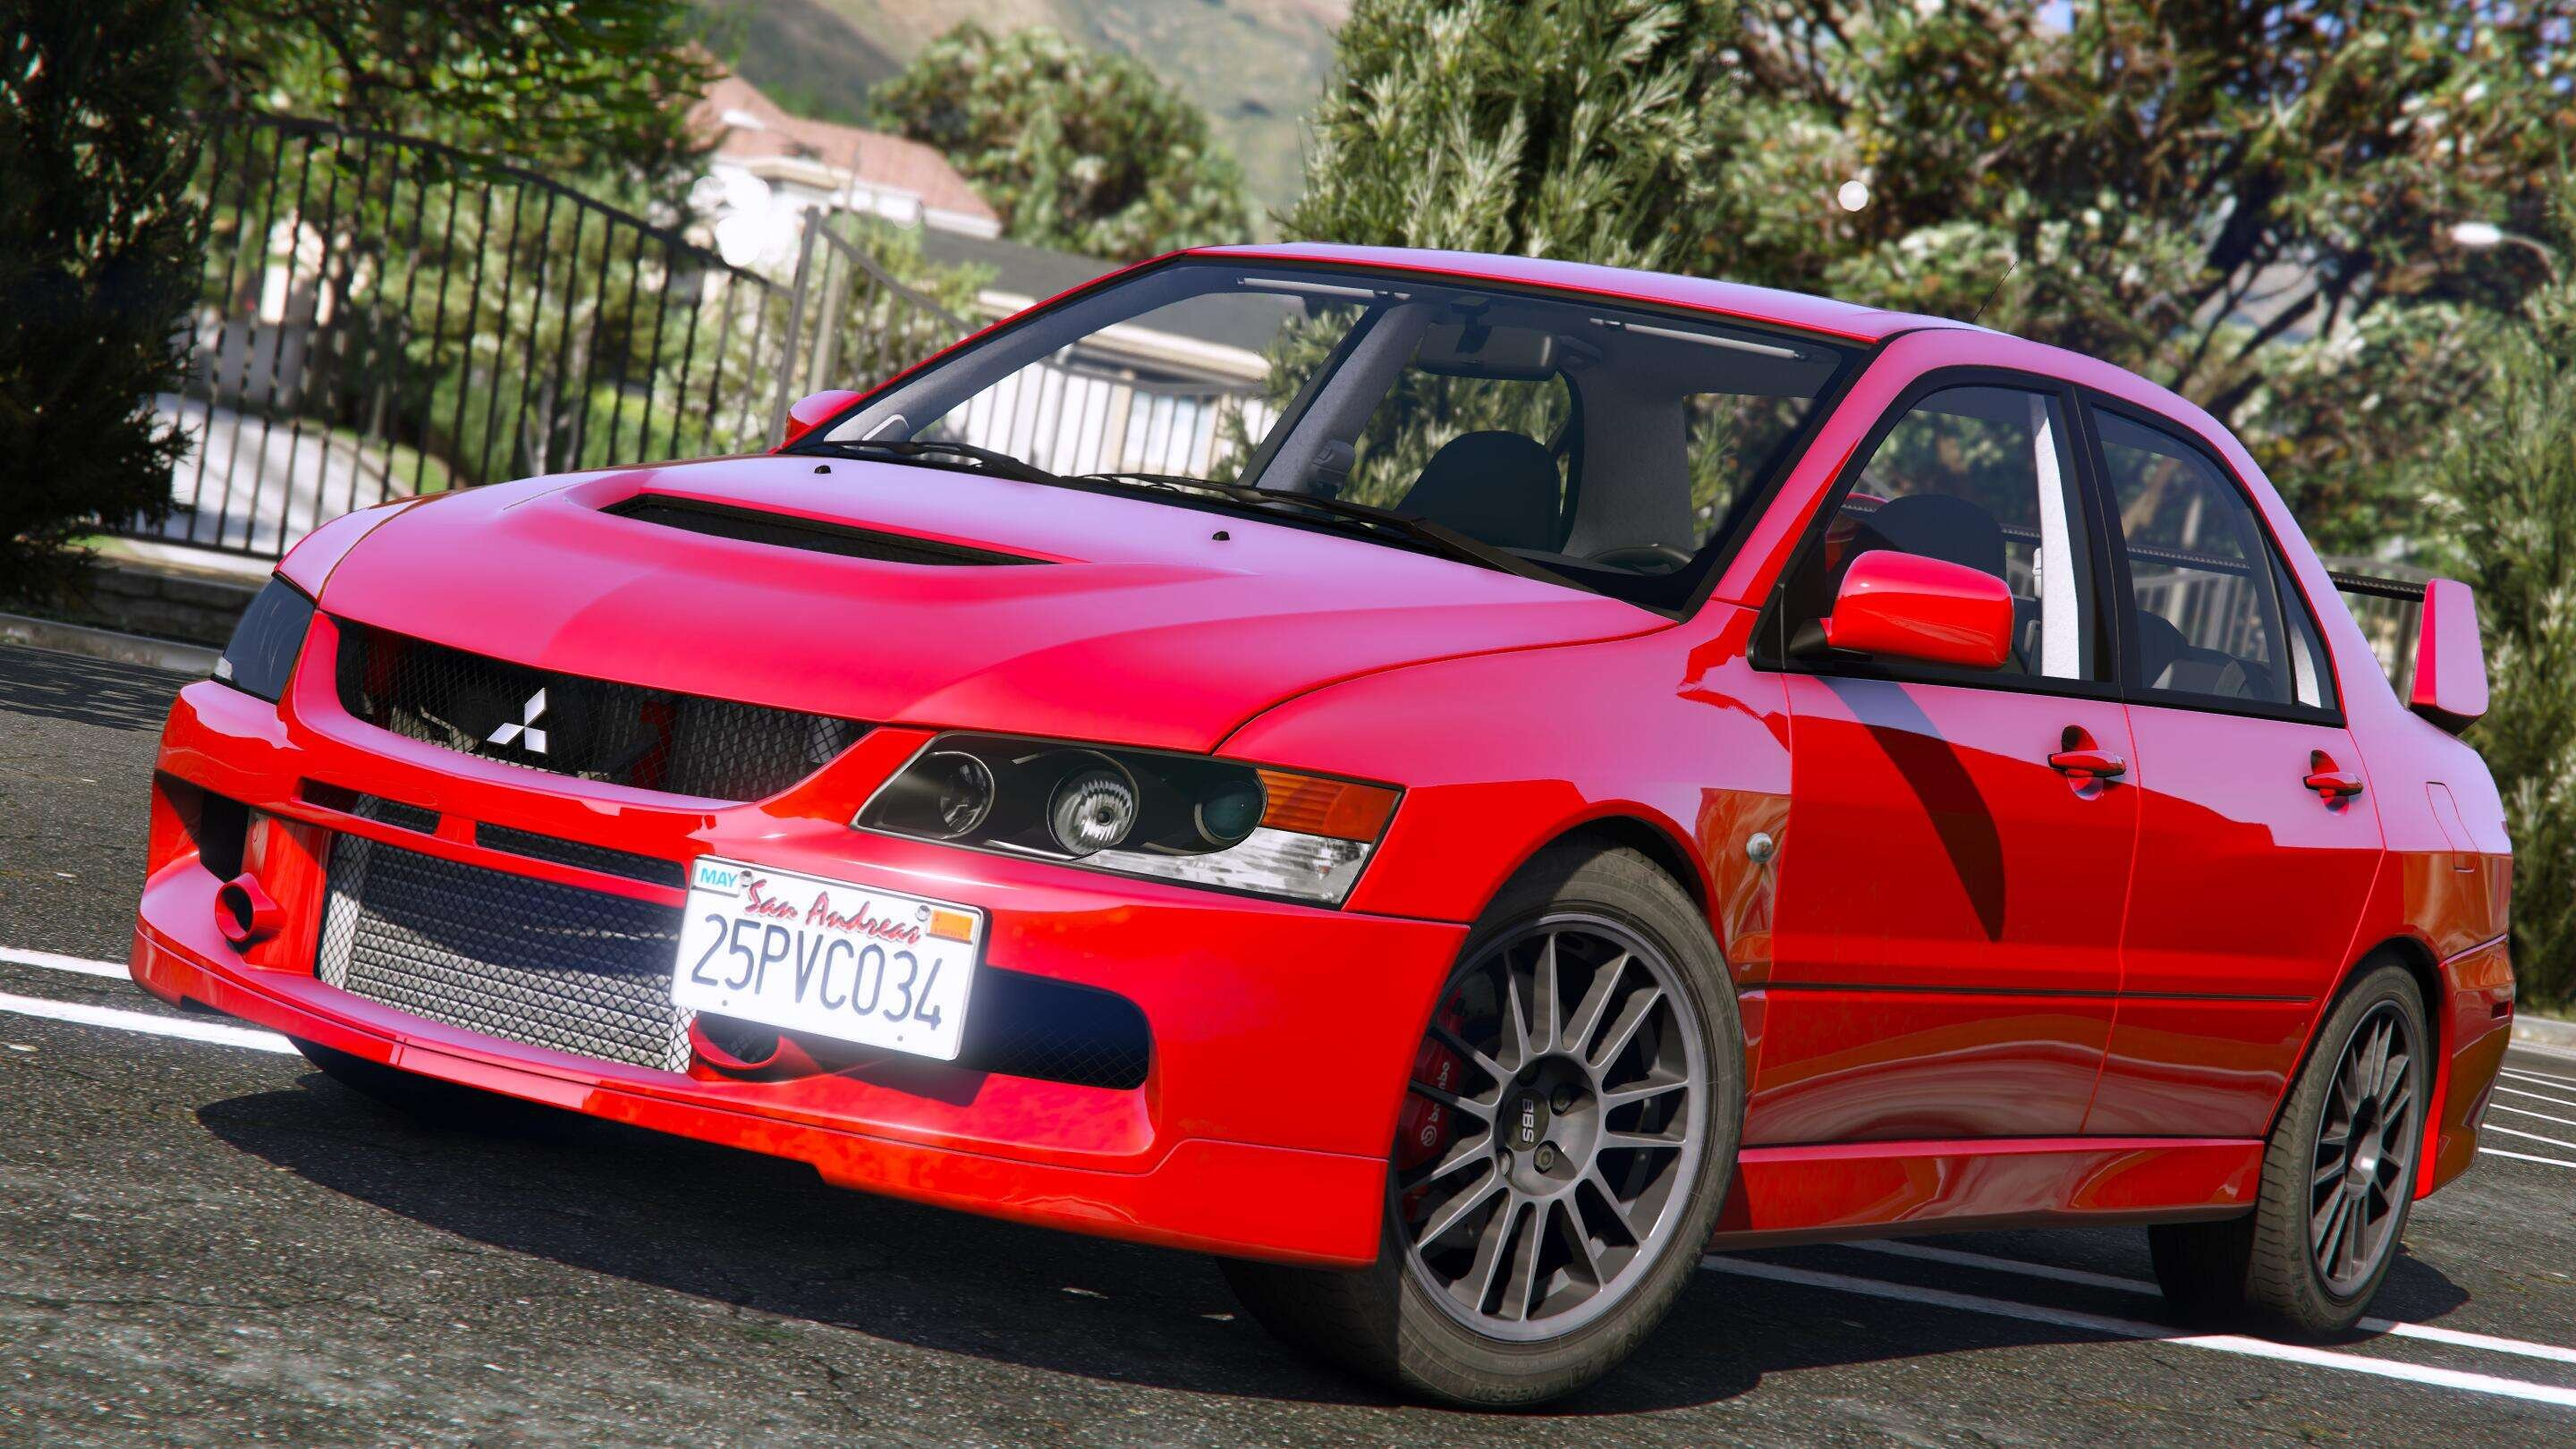 Mitsubishi Lancer Evolution IX MR [Add-On] - GTA5-Mods.com